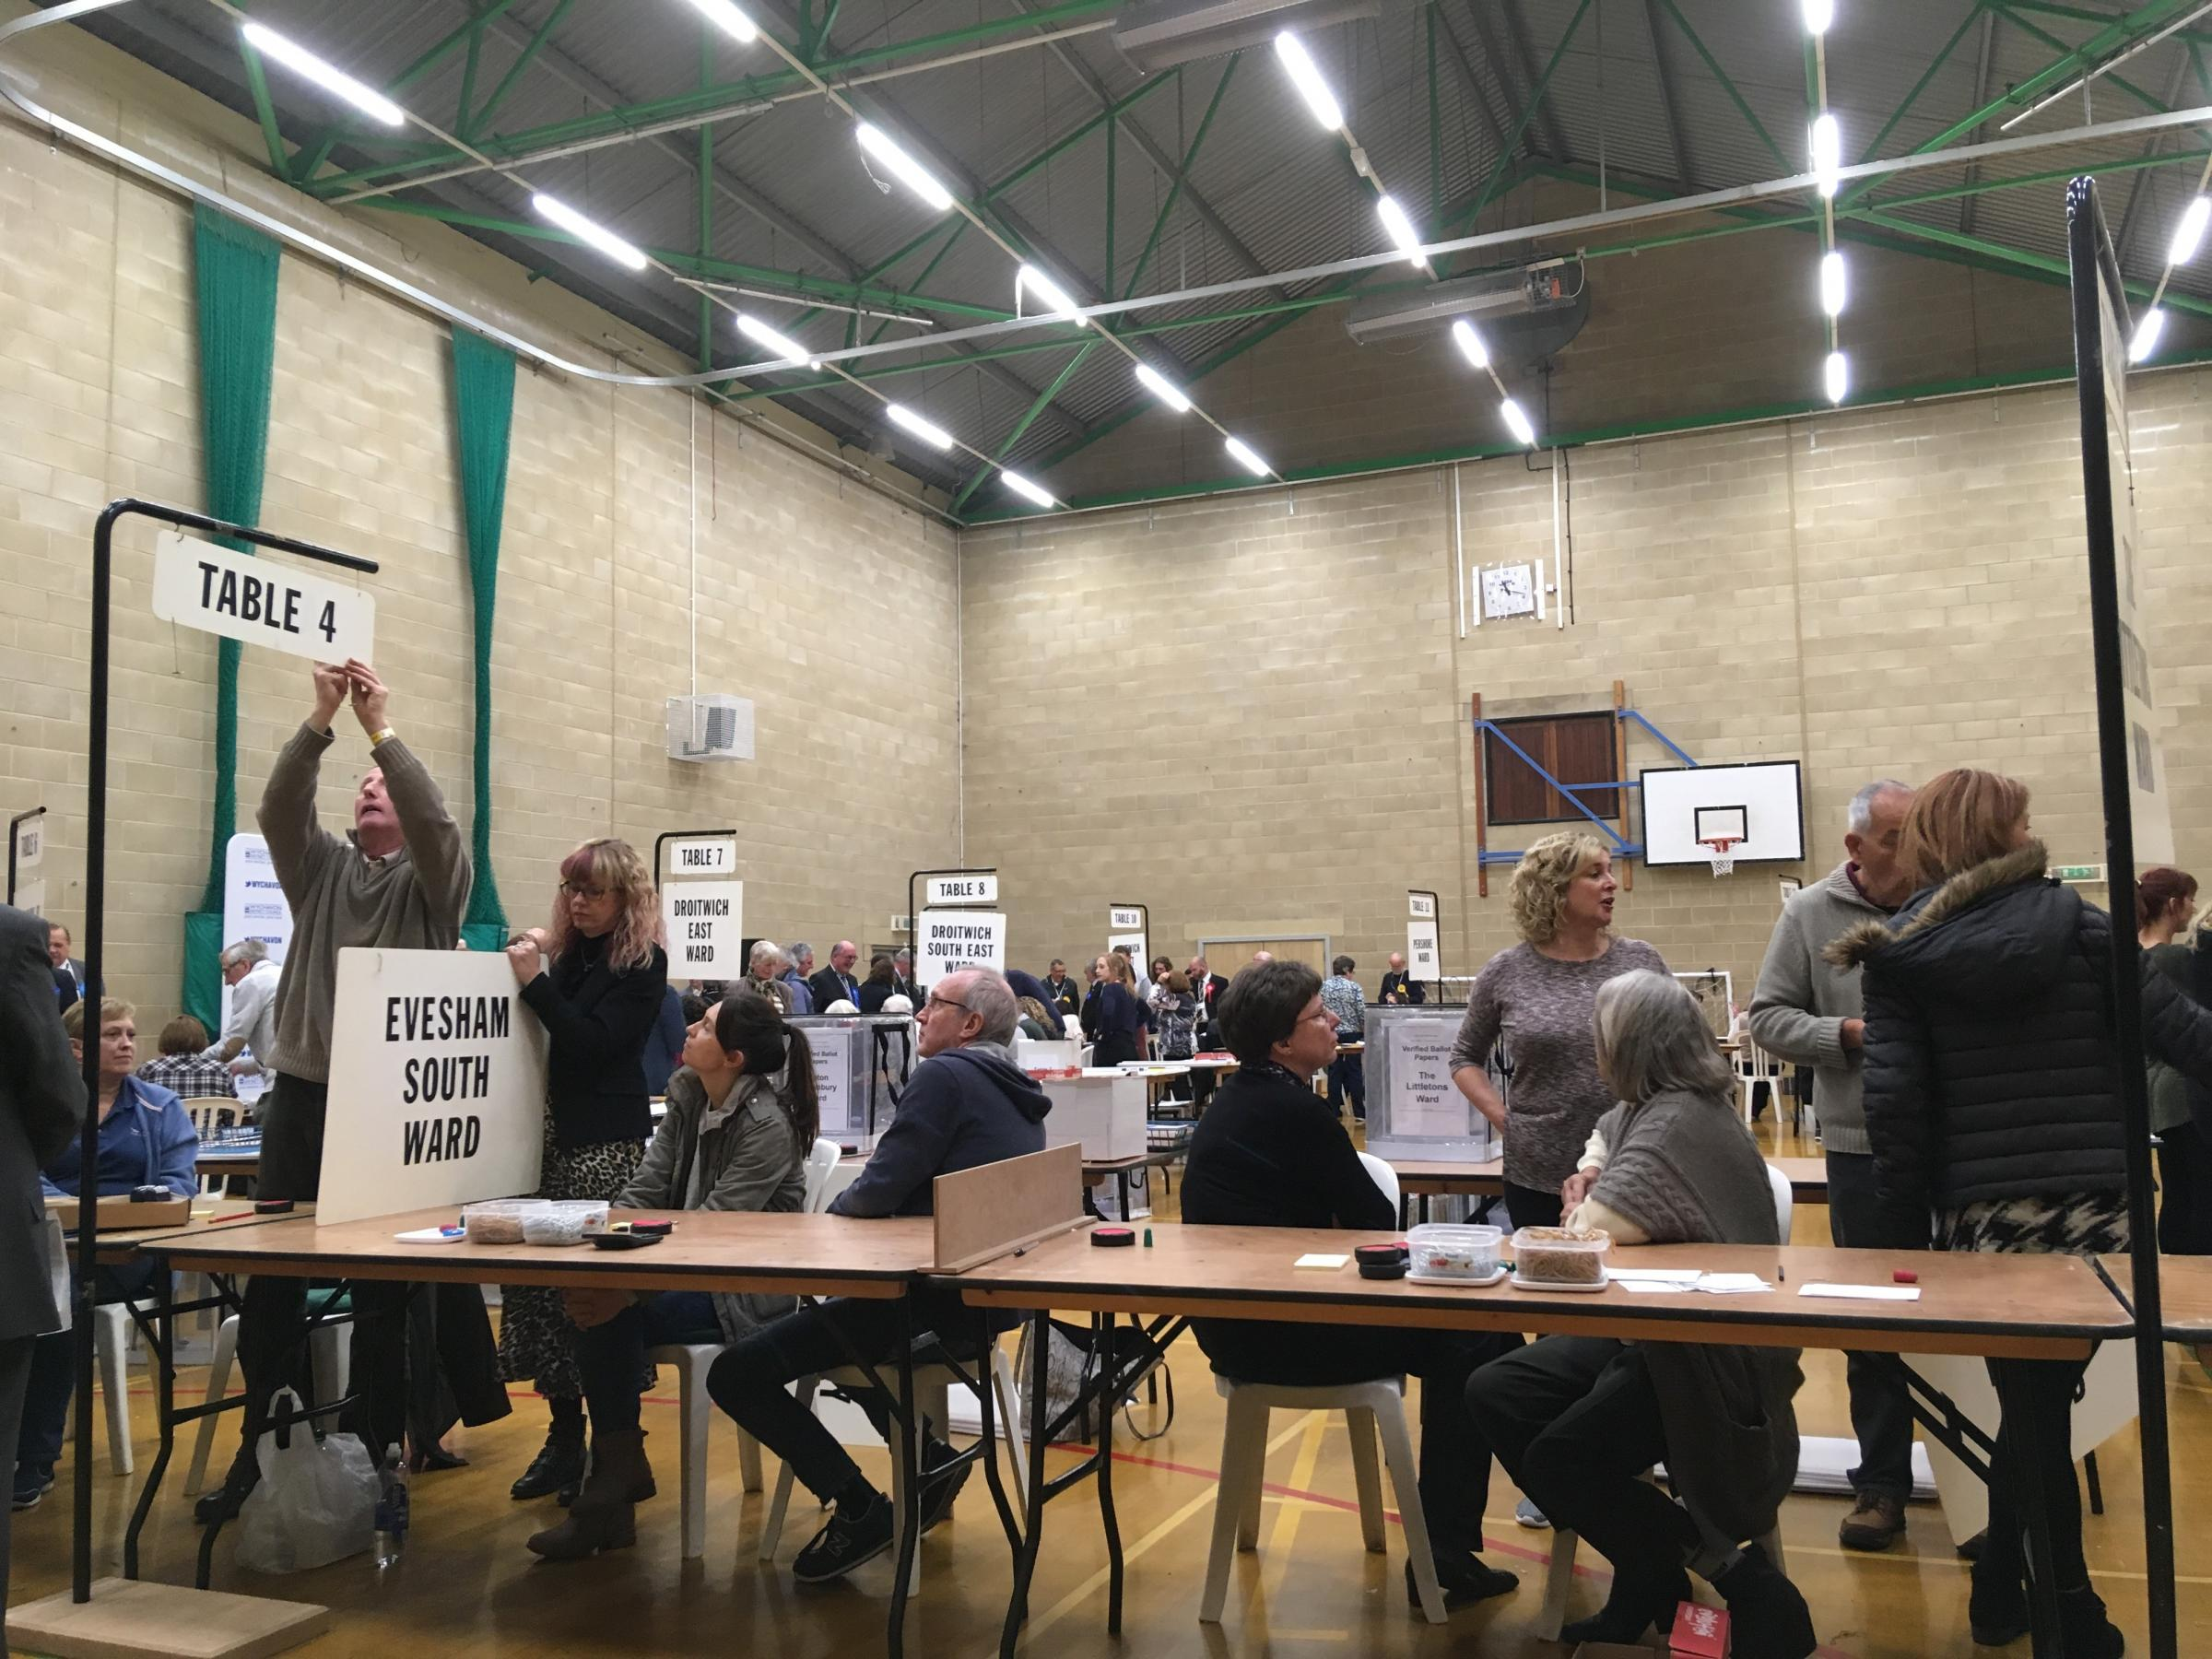 ELECTION 2019: The Conservatives mantained a strong grip on Wychavon District Council despite losing seats. The Green Party made history by gaining its first two councillors and the Lib Dems gained another councillor in Pershore.